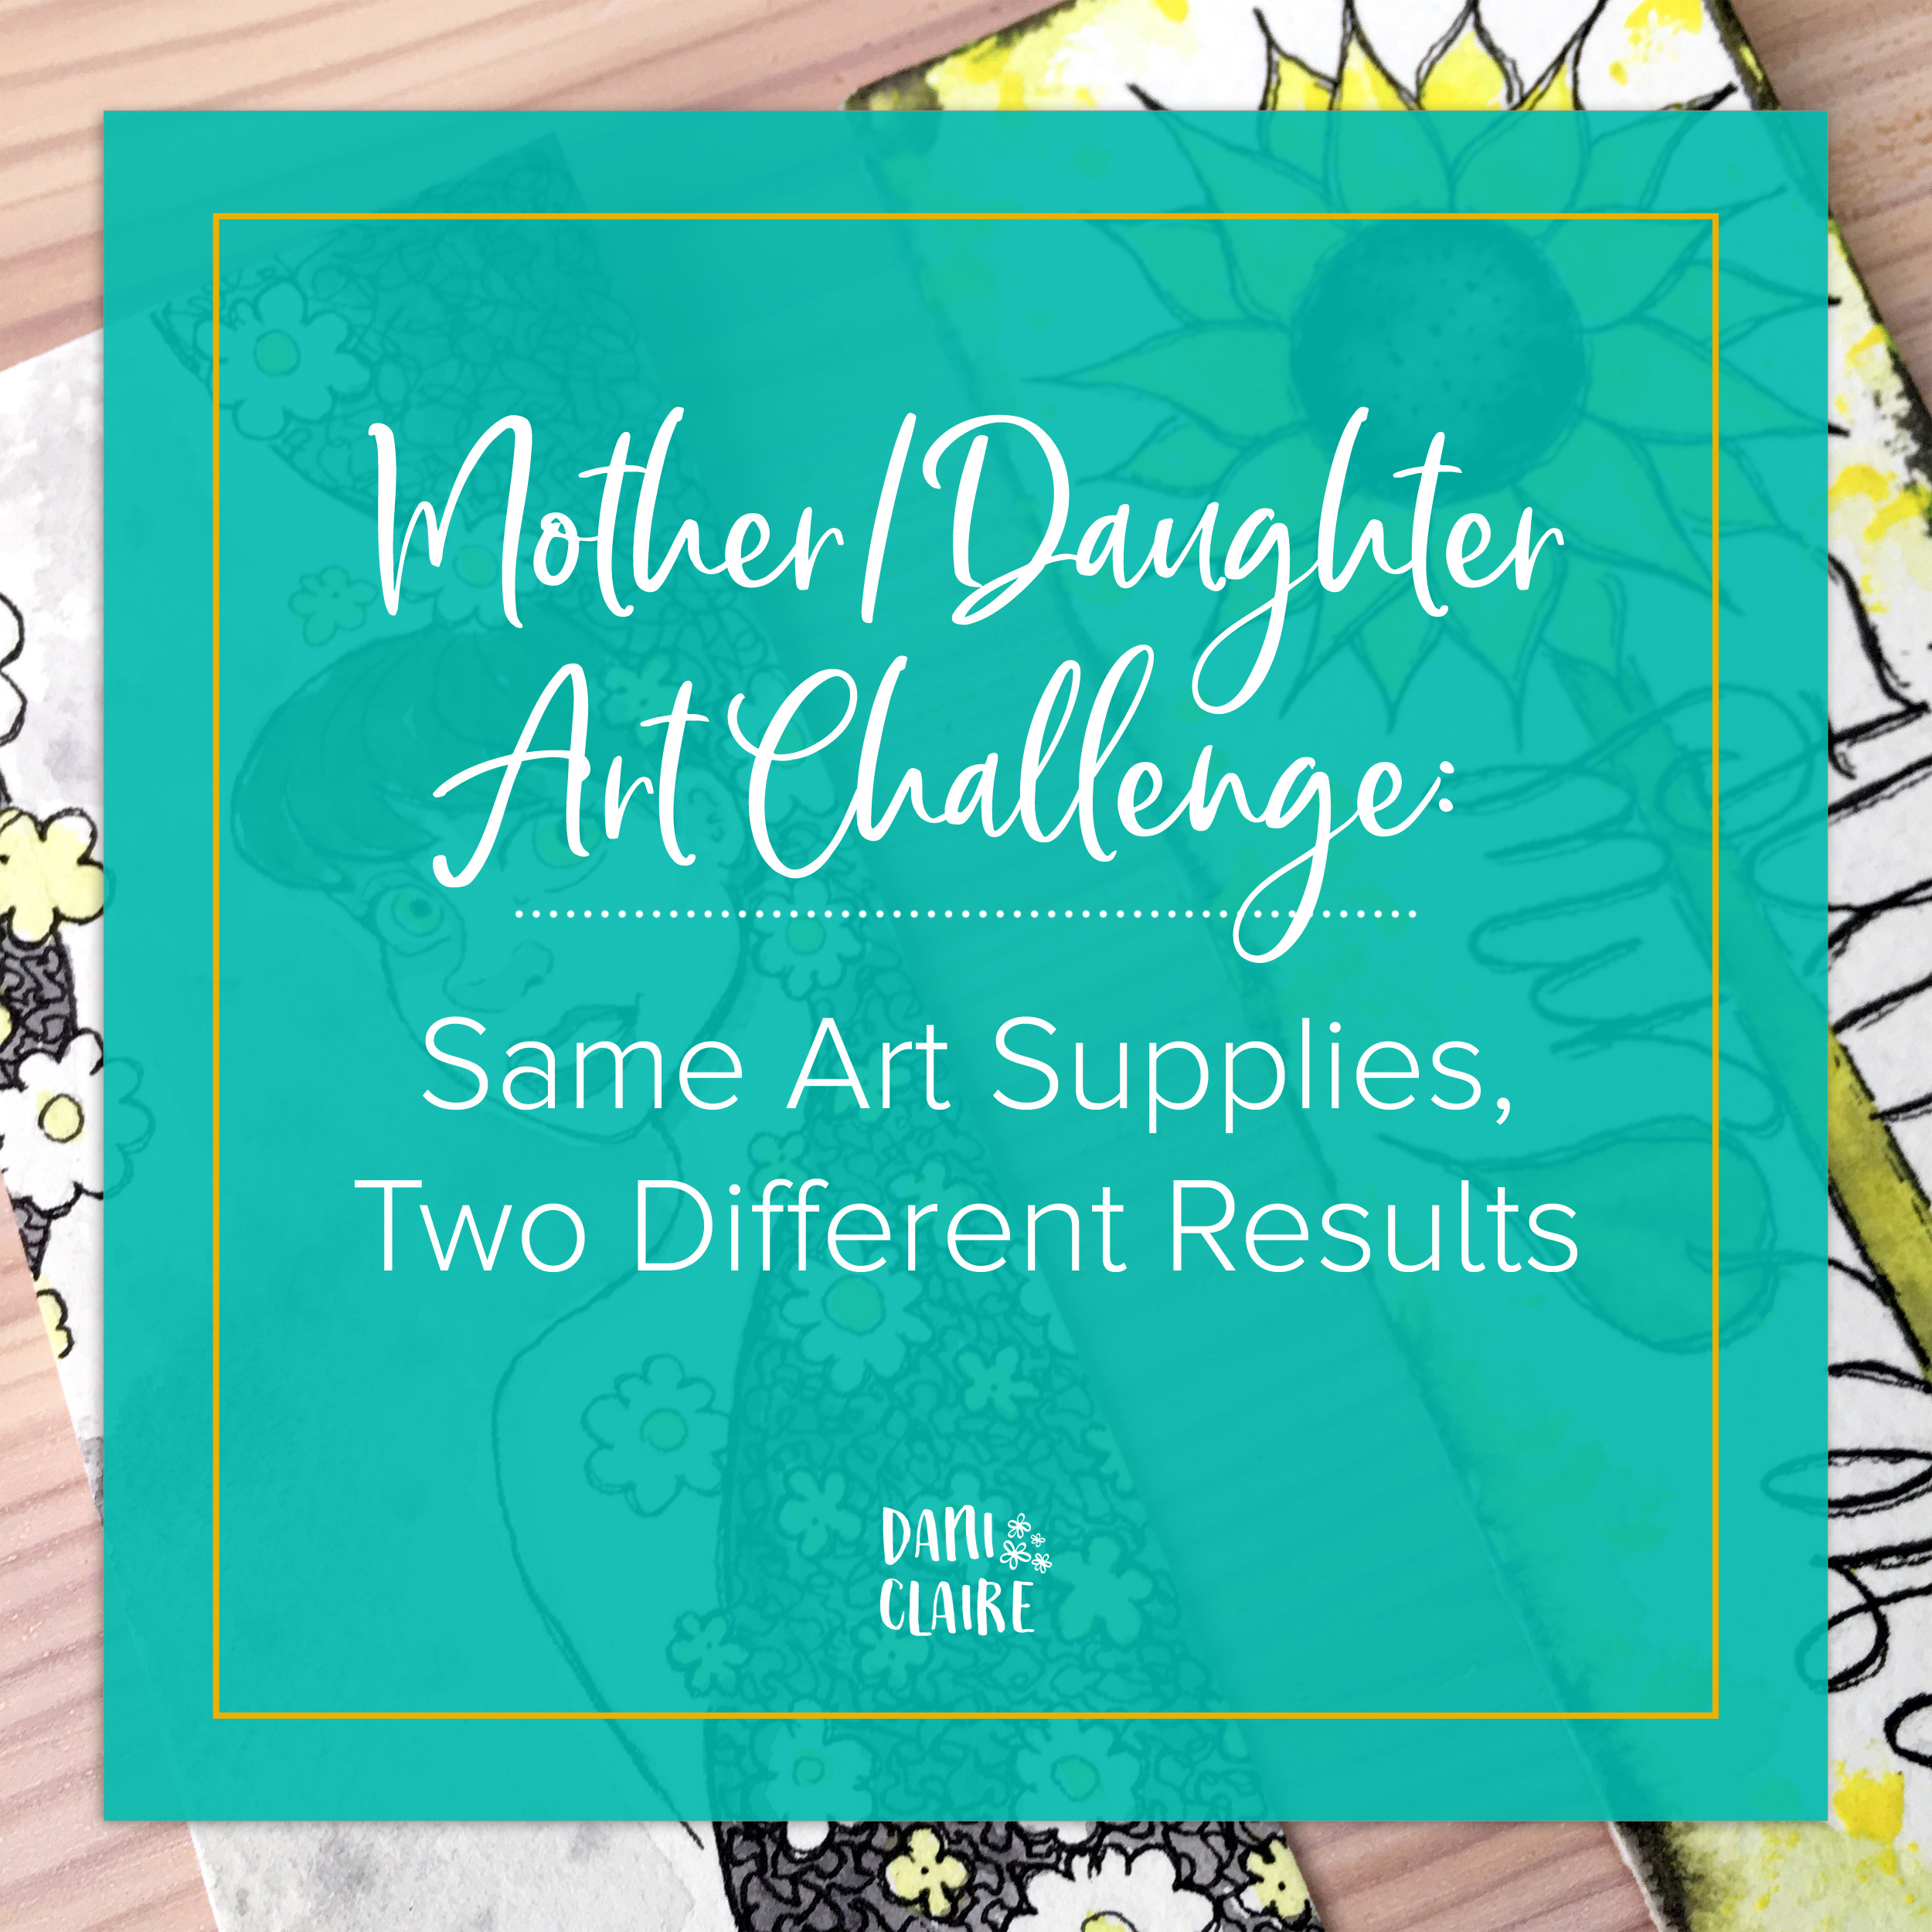 Dani Claire. Mother Daughter Art Challenge. Same Art Supplies, Two Results. Watercolor Art. Watercolor Artists. Flower Art. Girl Art. #artsnackschallenge. Art Snacks. Hand Letter Artist. Handlettering. You Are My Sunshine. Sunflower Art. Girlie Art.